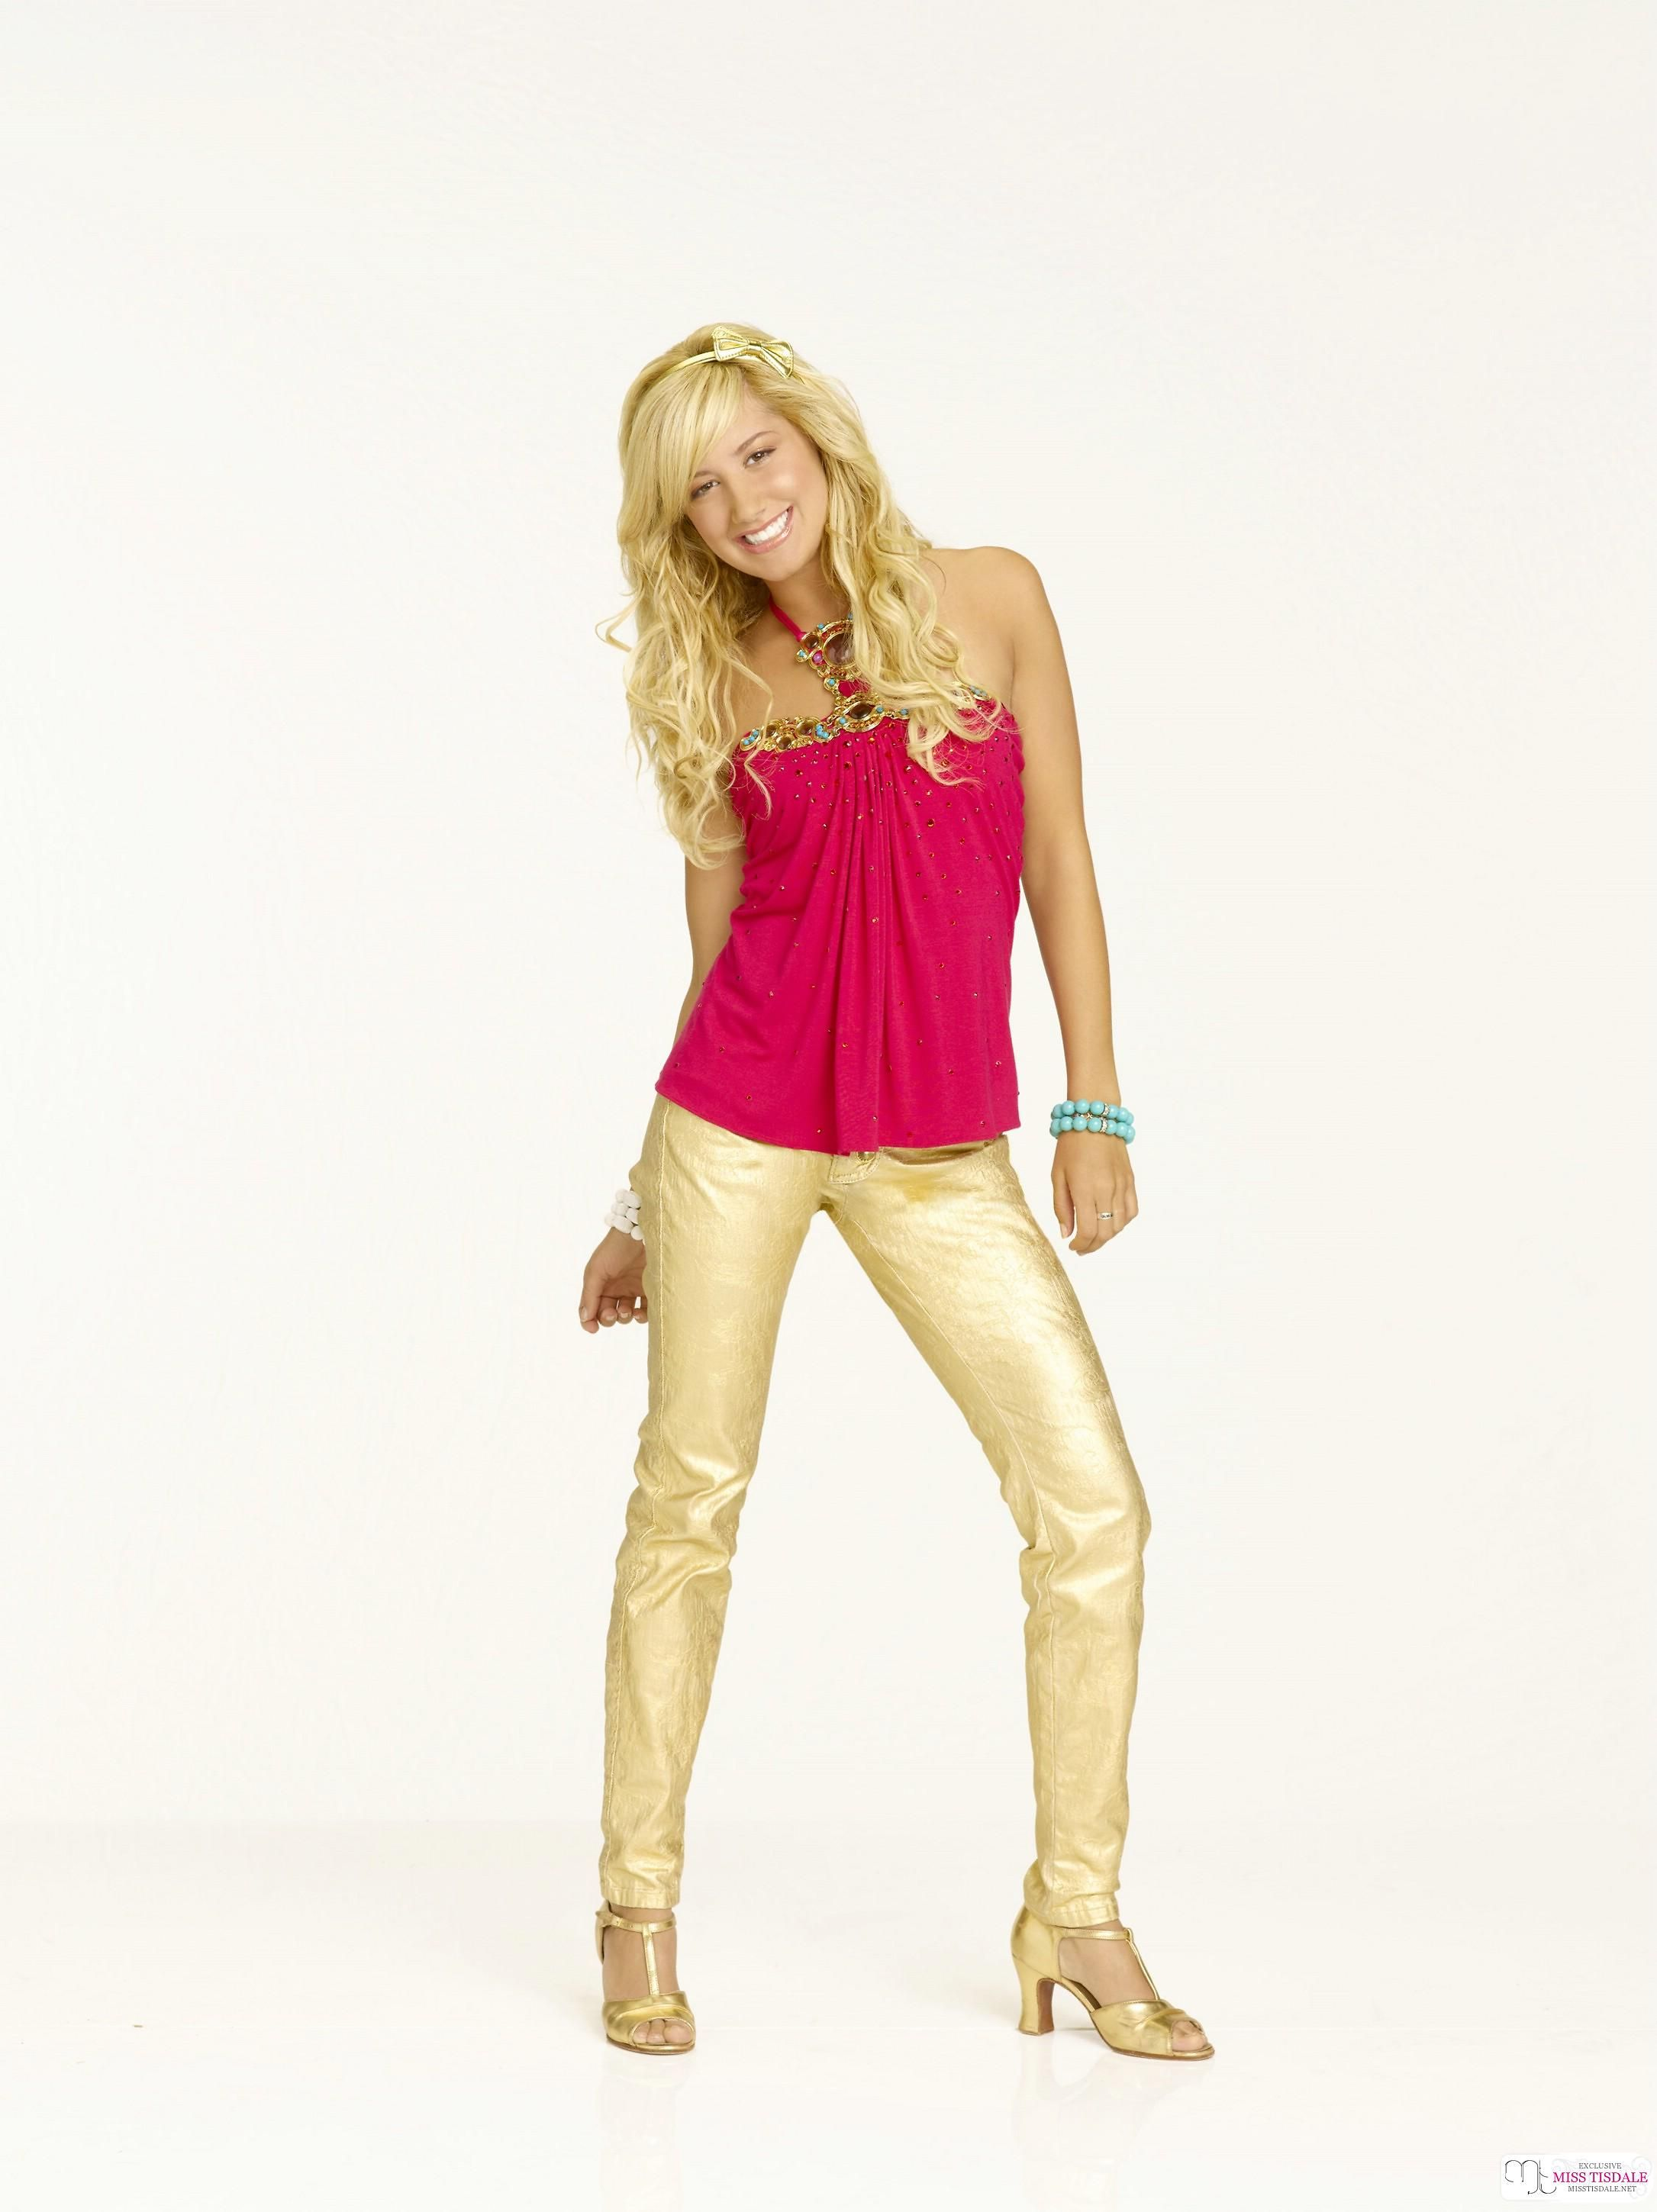 Sharpay Evans photoshoot HSM 2 | High School Musical ... - photo#29